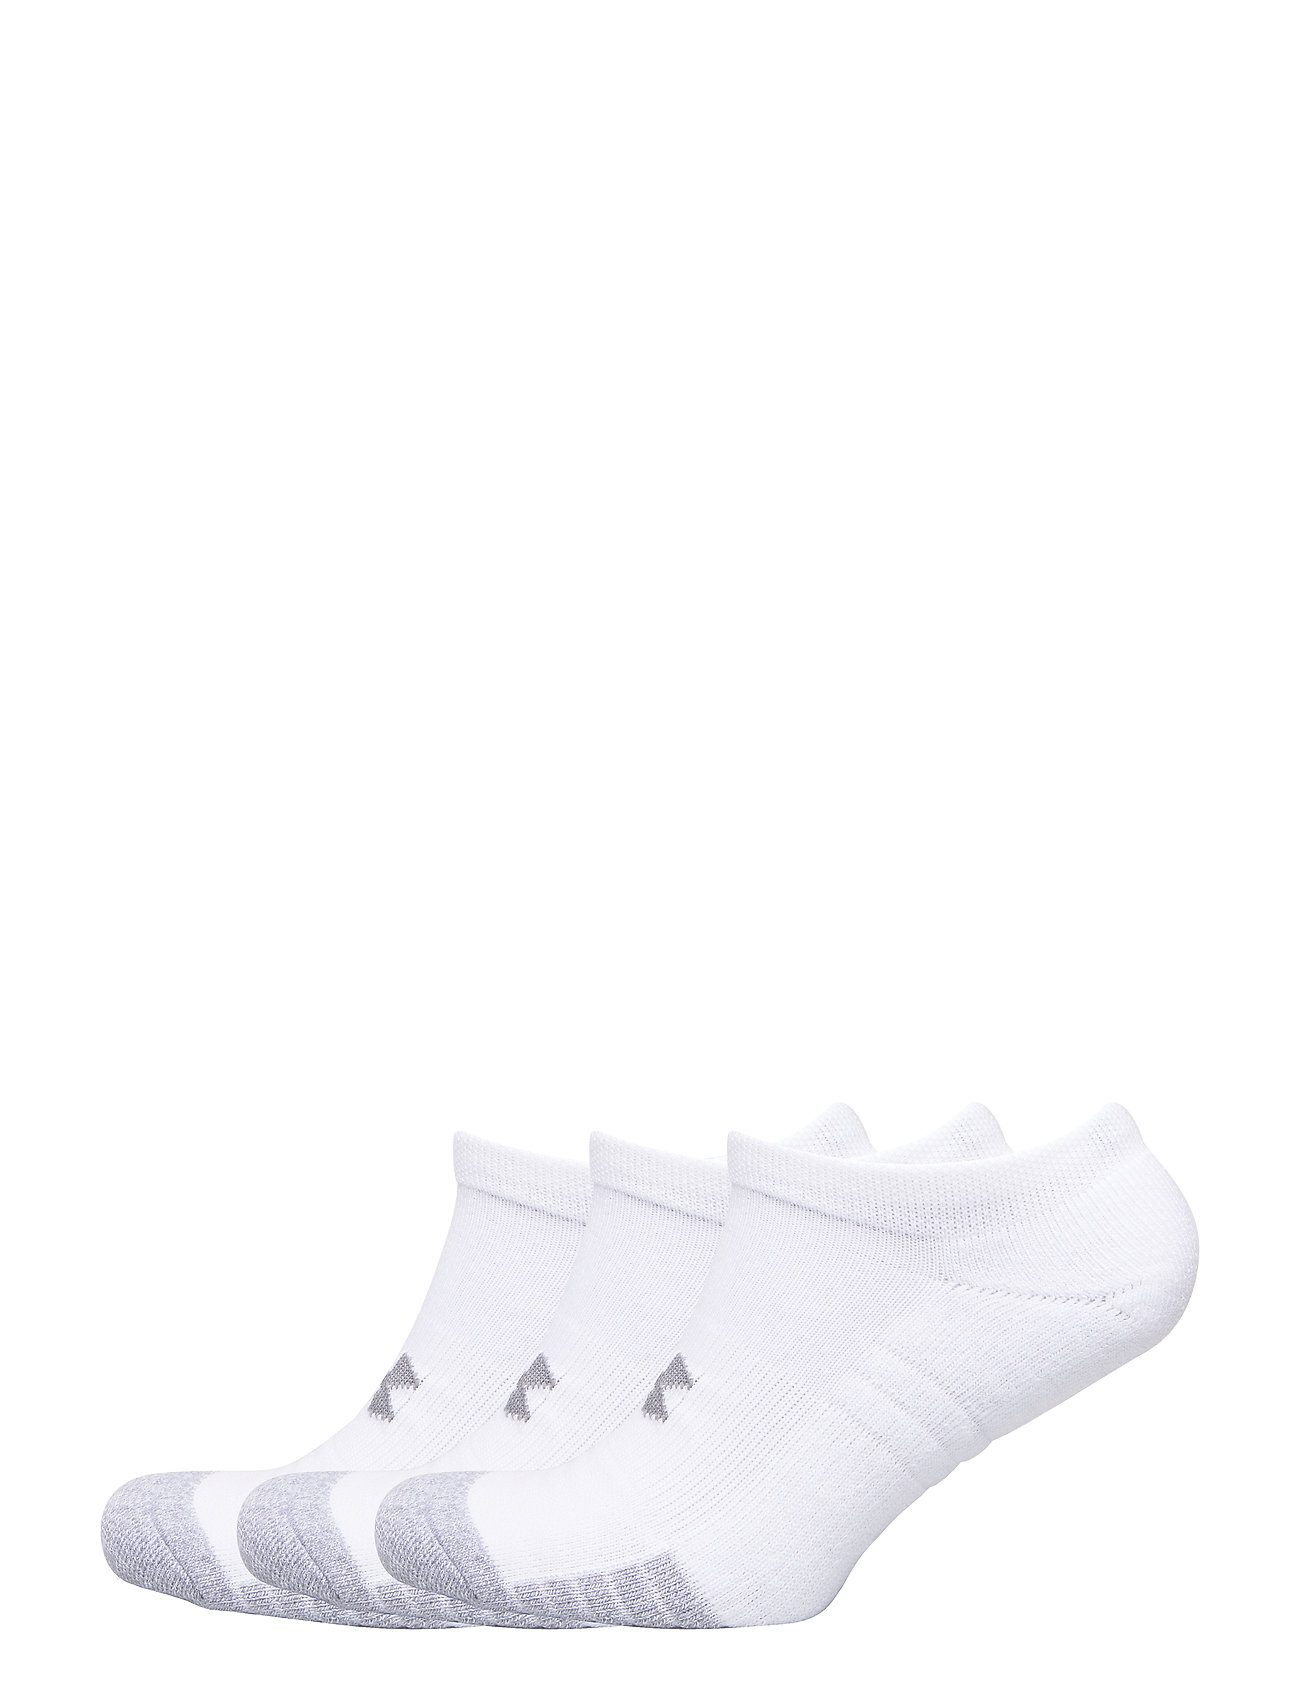 Under Armour UA Heatgear NS - WHITE